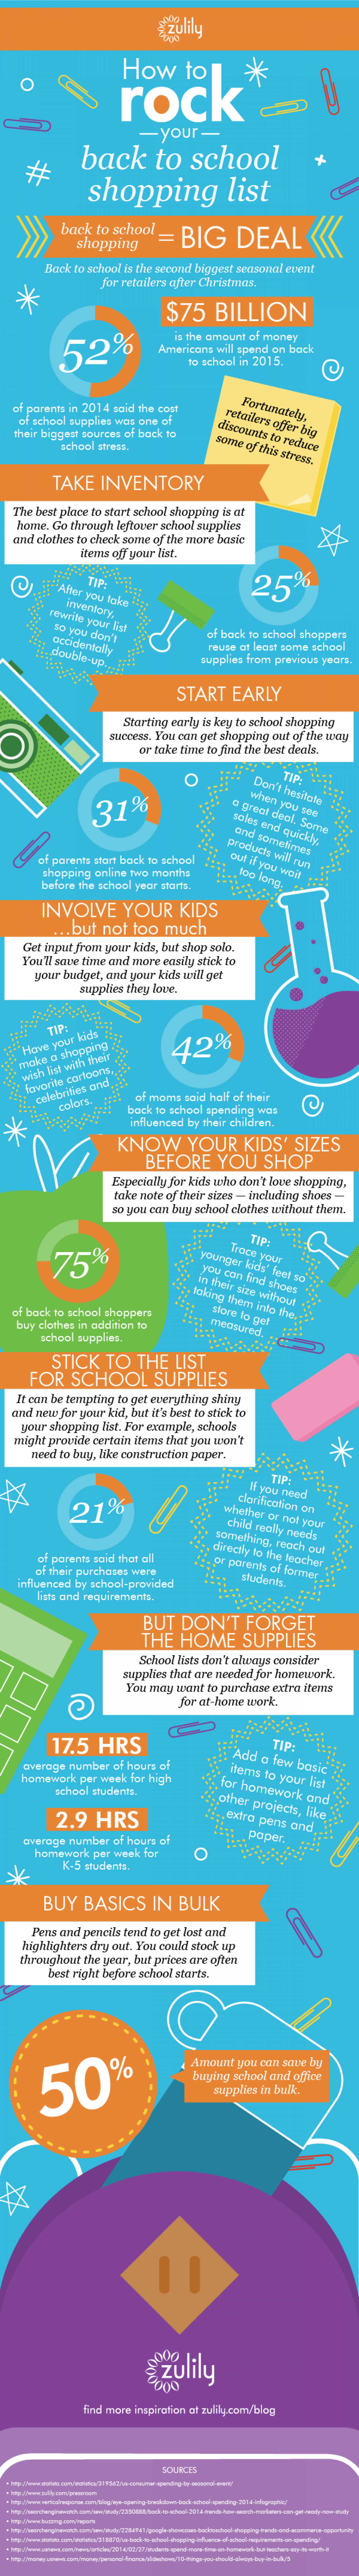 How to Rock your Back to School Shopping List Infographic